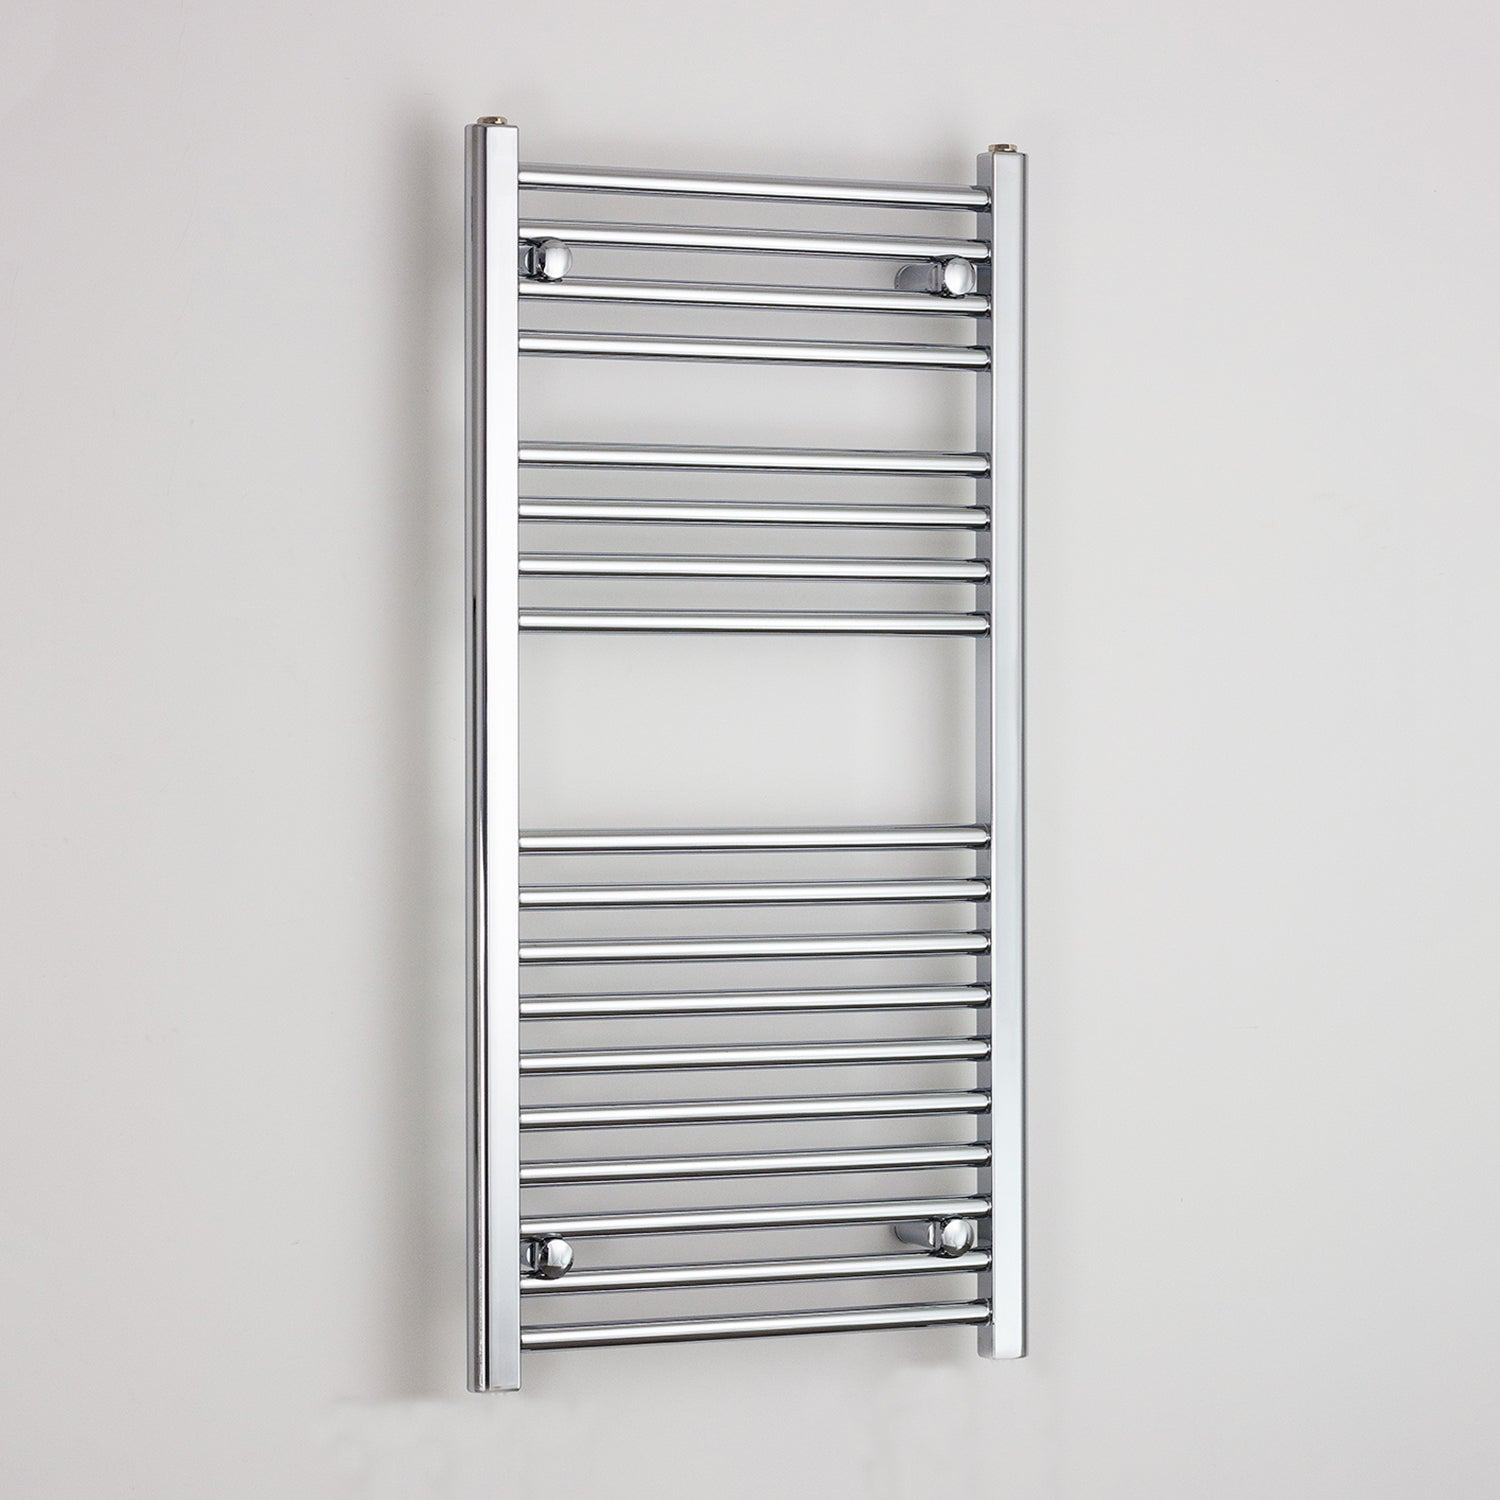 600mm Wide 1000mm High Flat Chrome Heated Towel Rail Radiator HTR,Towel Rail Only